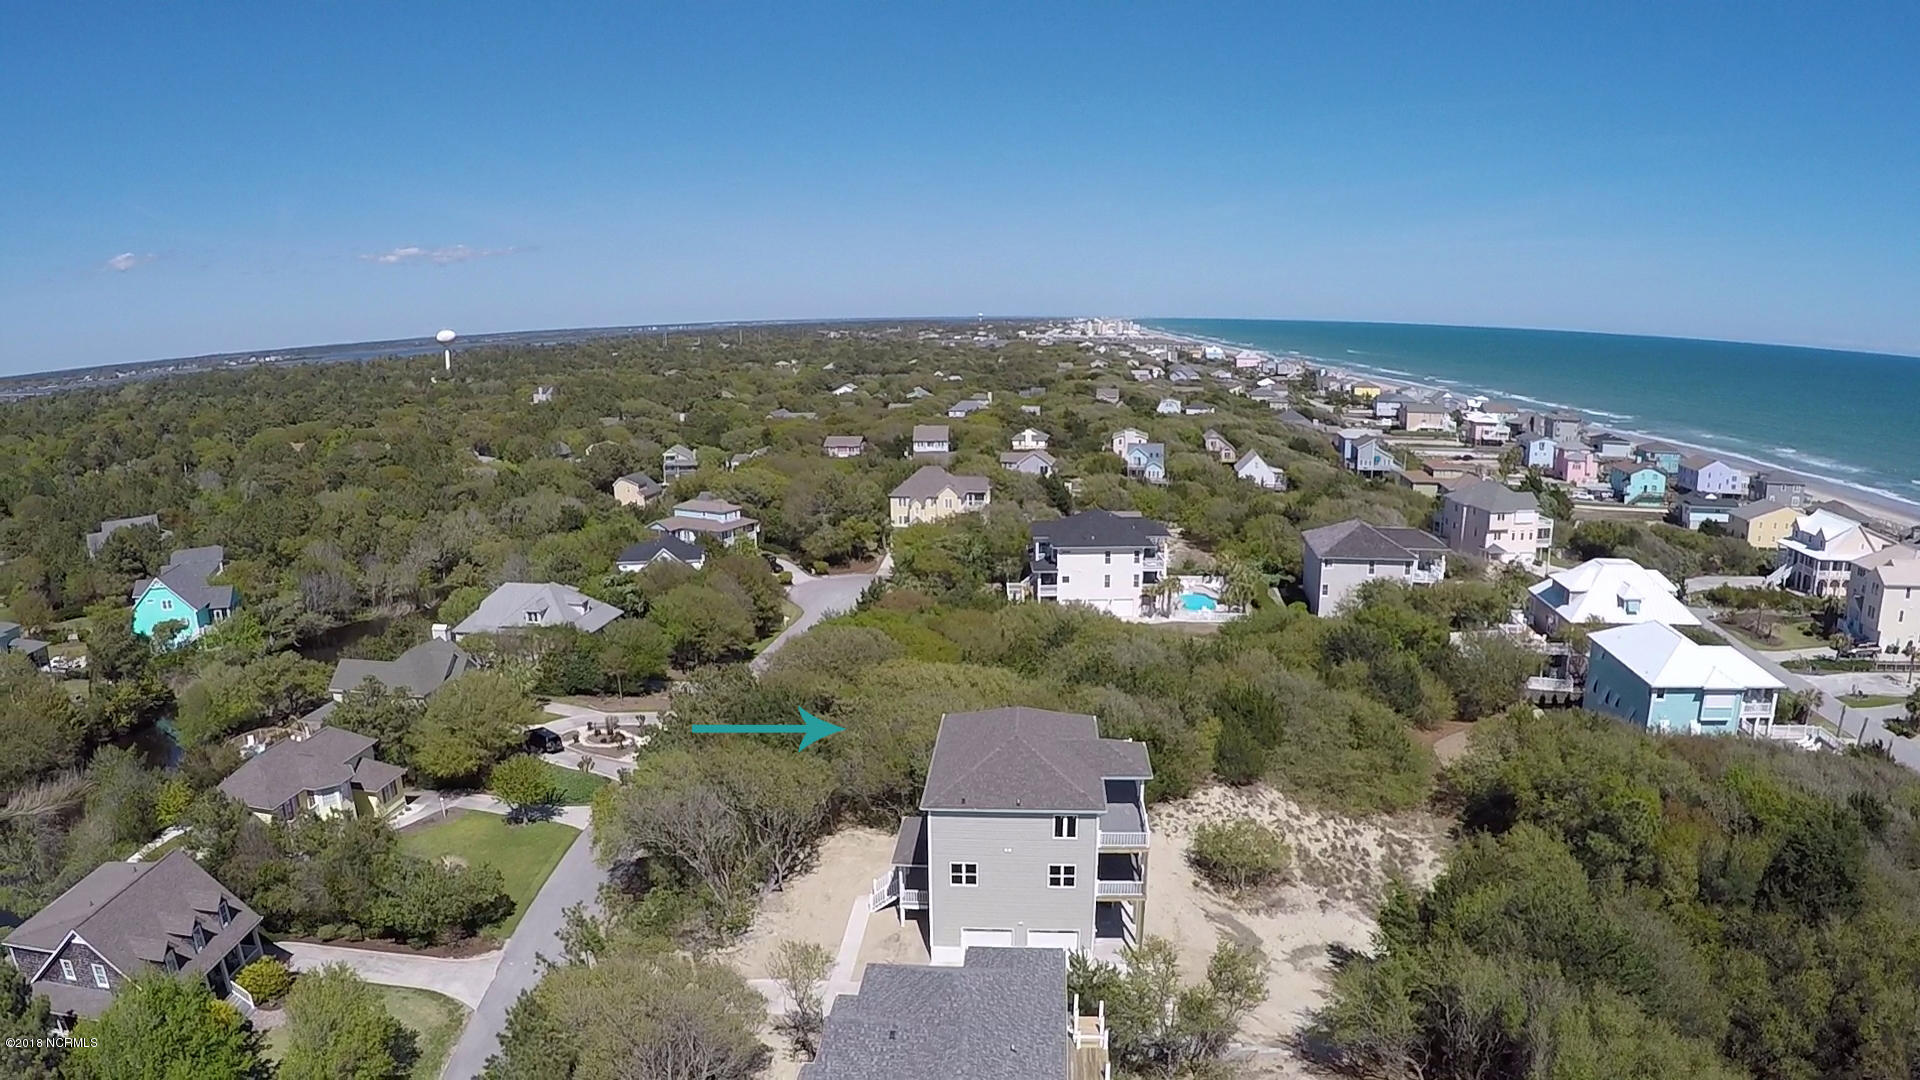 9707 Spinnaker Place, Emerald Isle, North Carolina 28594, ,Residential land,For sale,Spinnaker,100137812